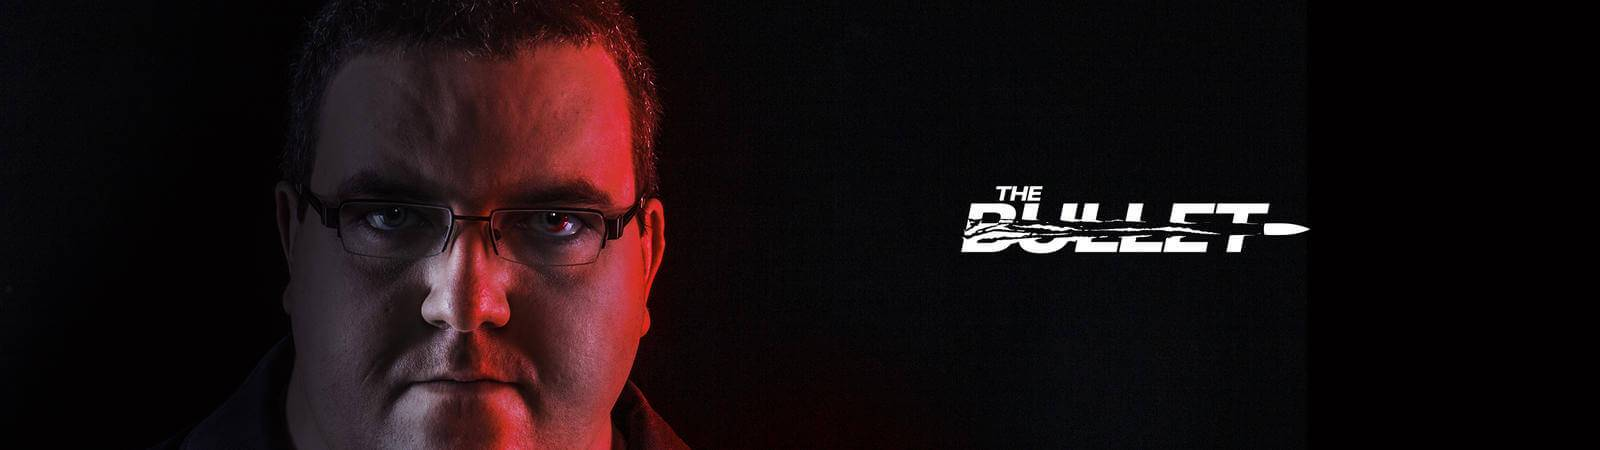 Target Stephen Bunting The Bullet